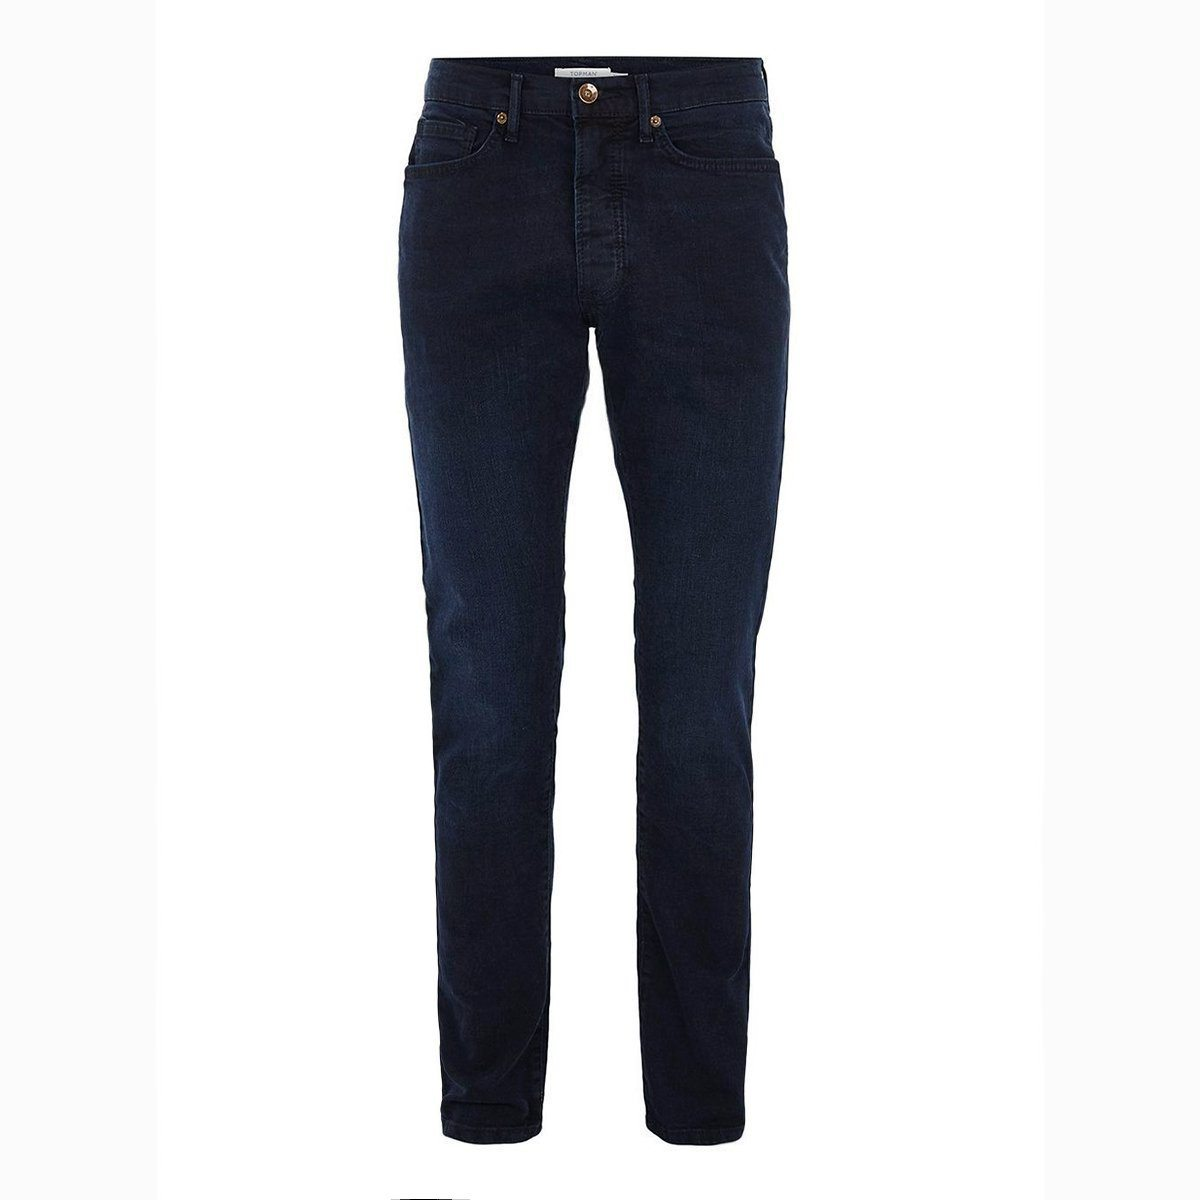 TM-blue overdyed 'skinny fit' stretch jeans